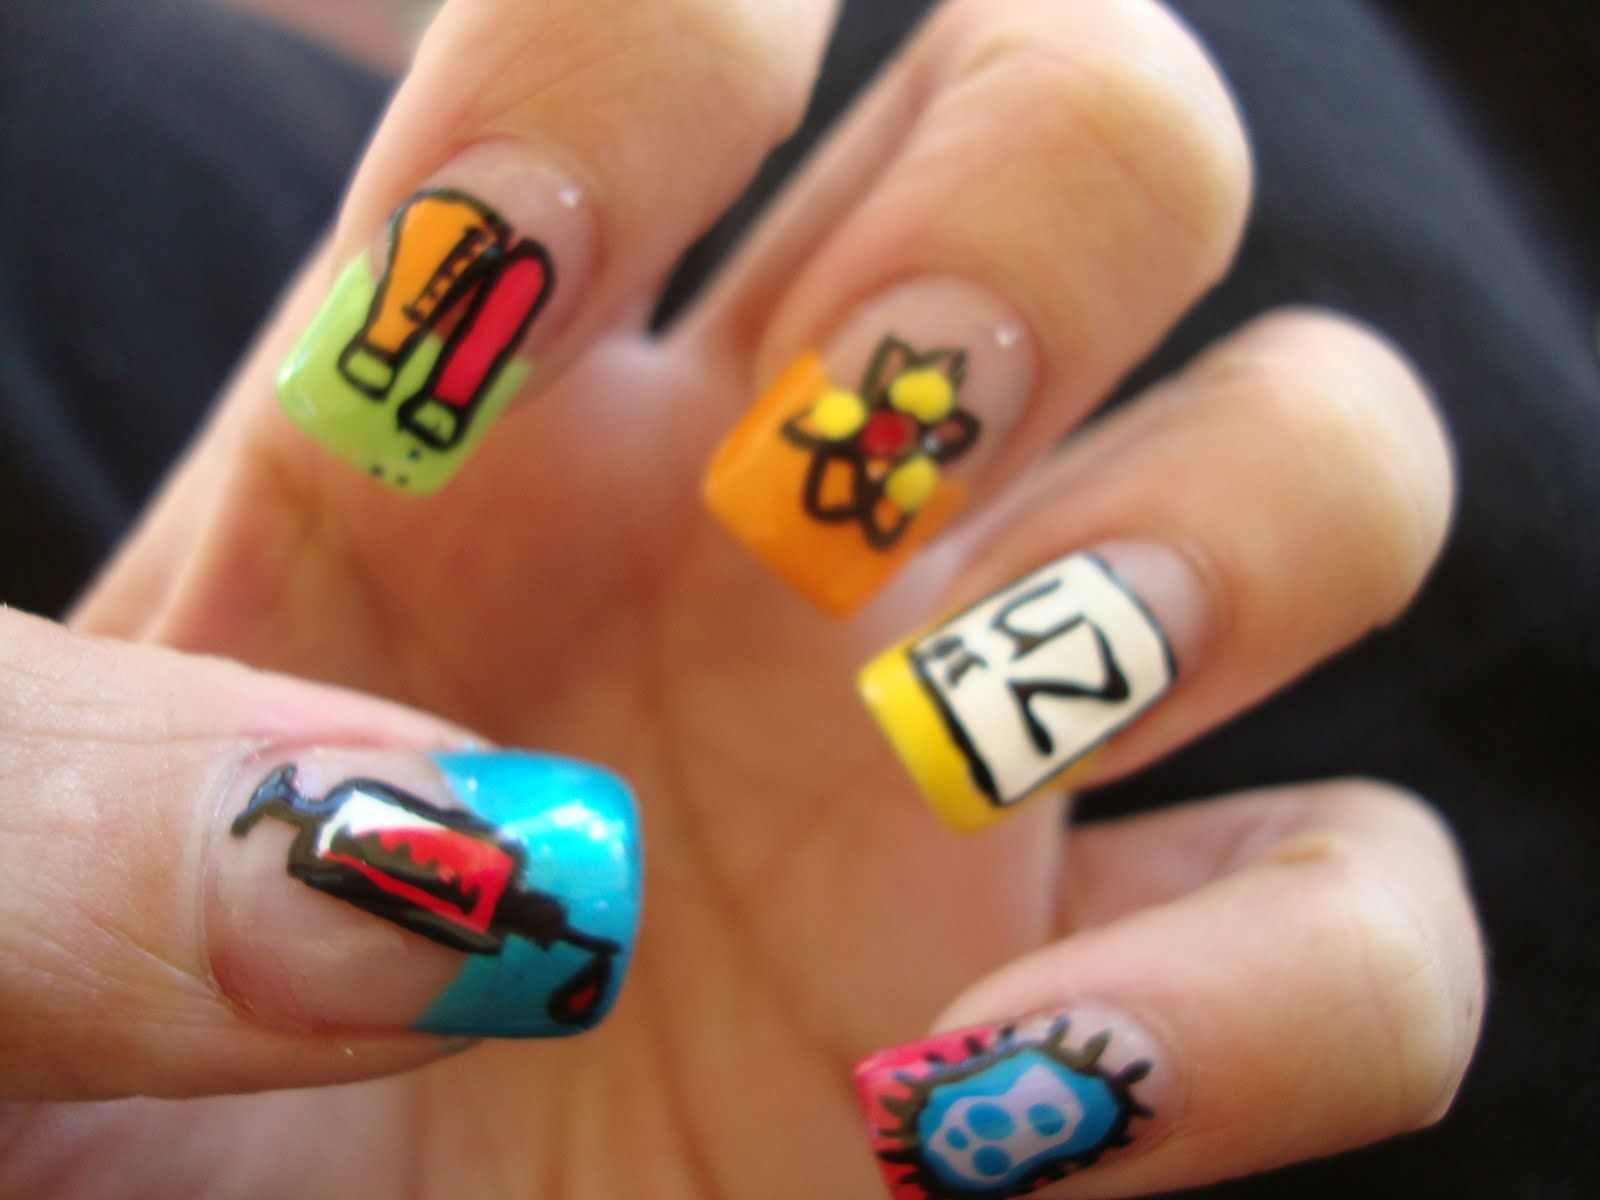 geeky science nails cant go wrong there - Hot Designs Nail Art Ideas